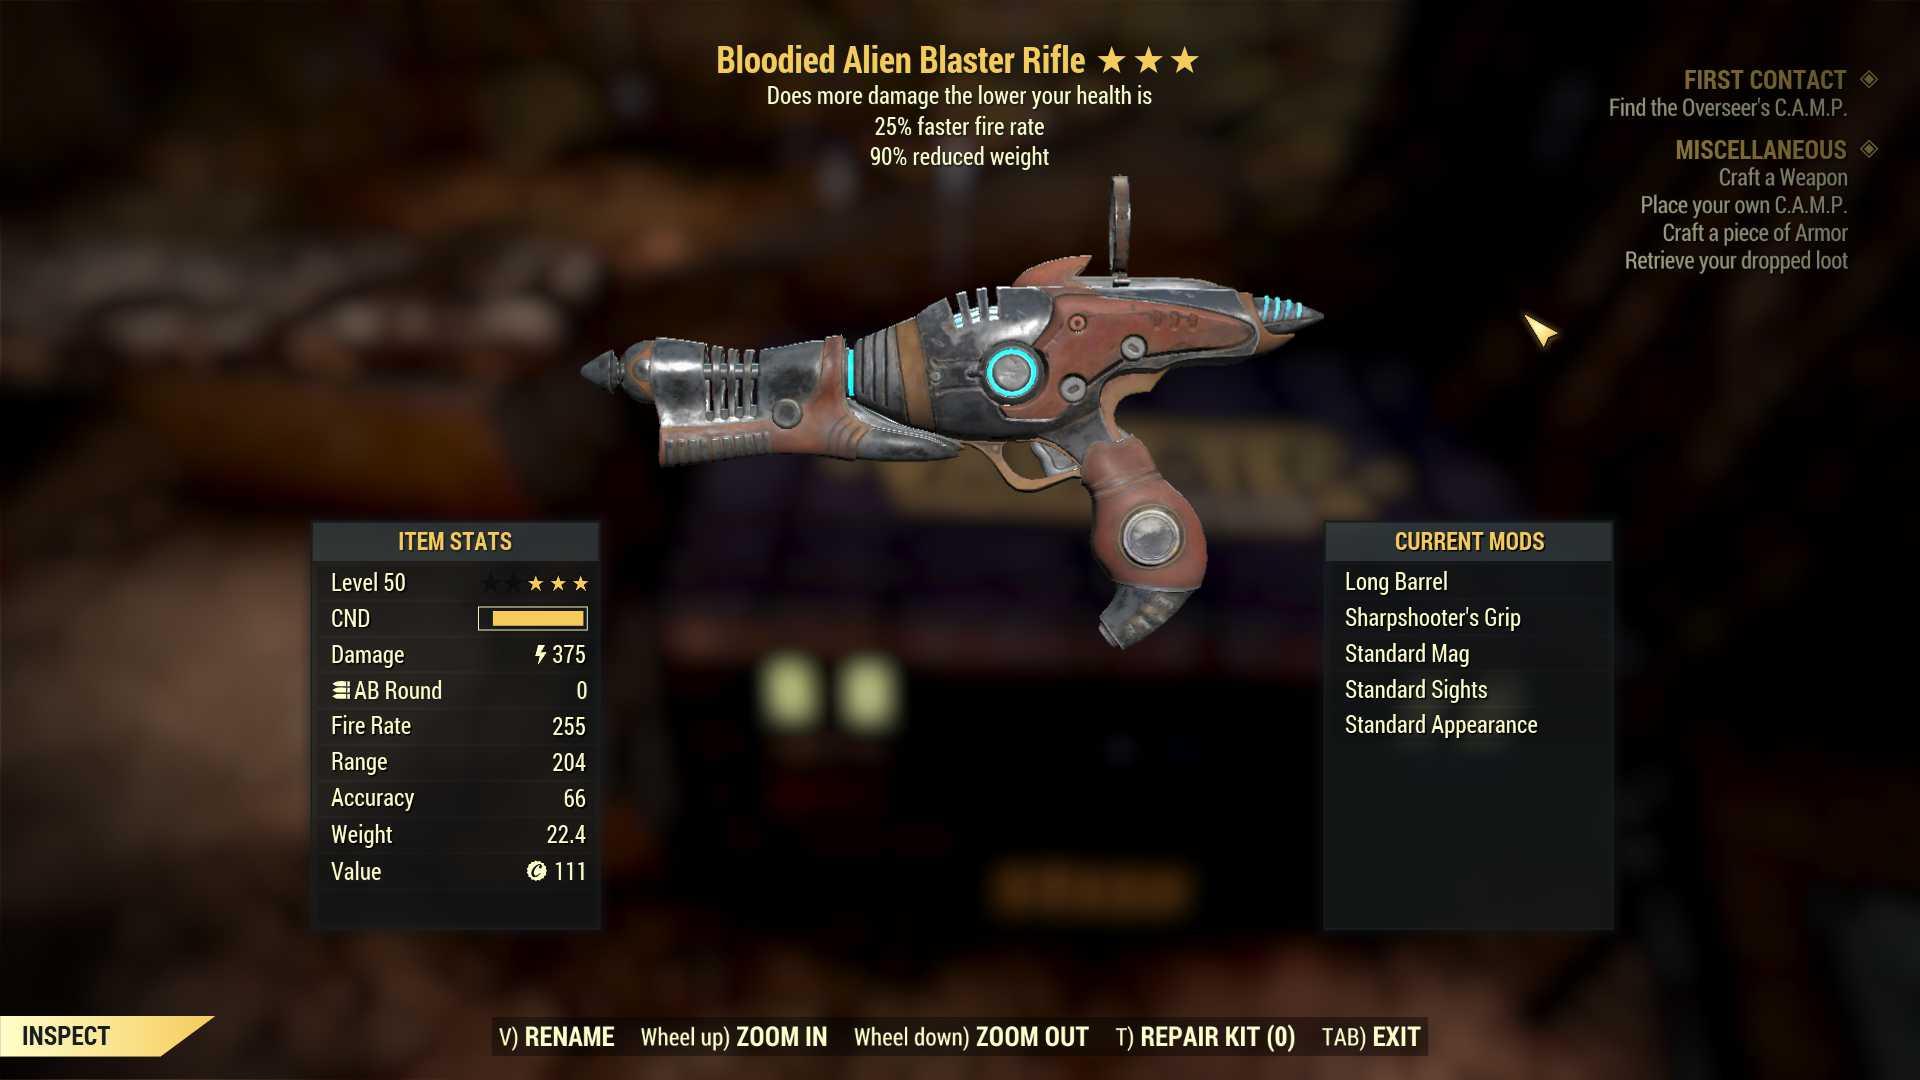 [Glitched weapon] Bloodied Alien Blaster Rifle (25% faster fire rate, 90% reduced weight)